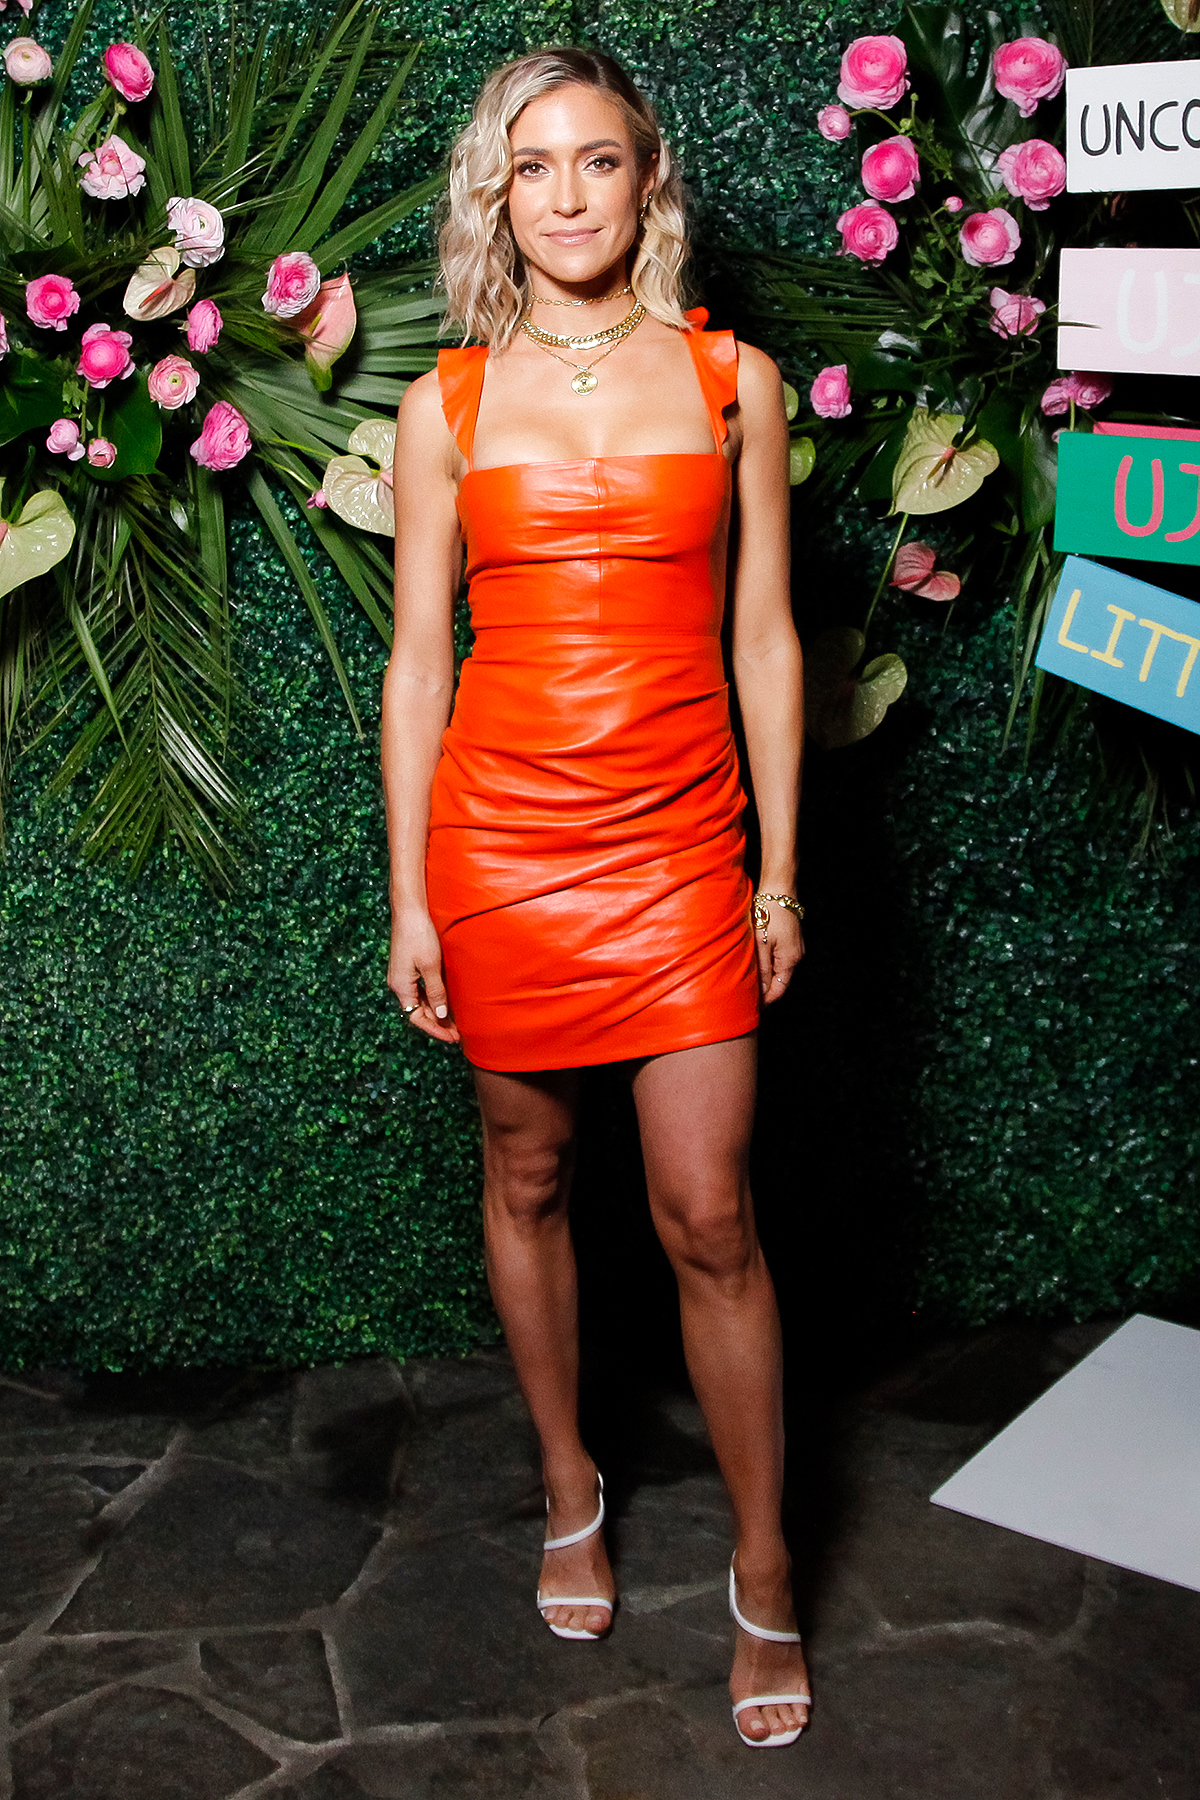 Kristin Cavallari attends the Uncommon James SS20 Launch Party hosted by Kristin Cavallari at Gracias Madre on March 05, 2020 in West Hollywood, California.